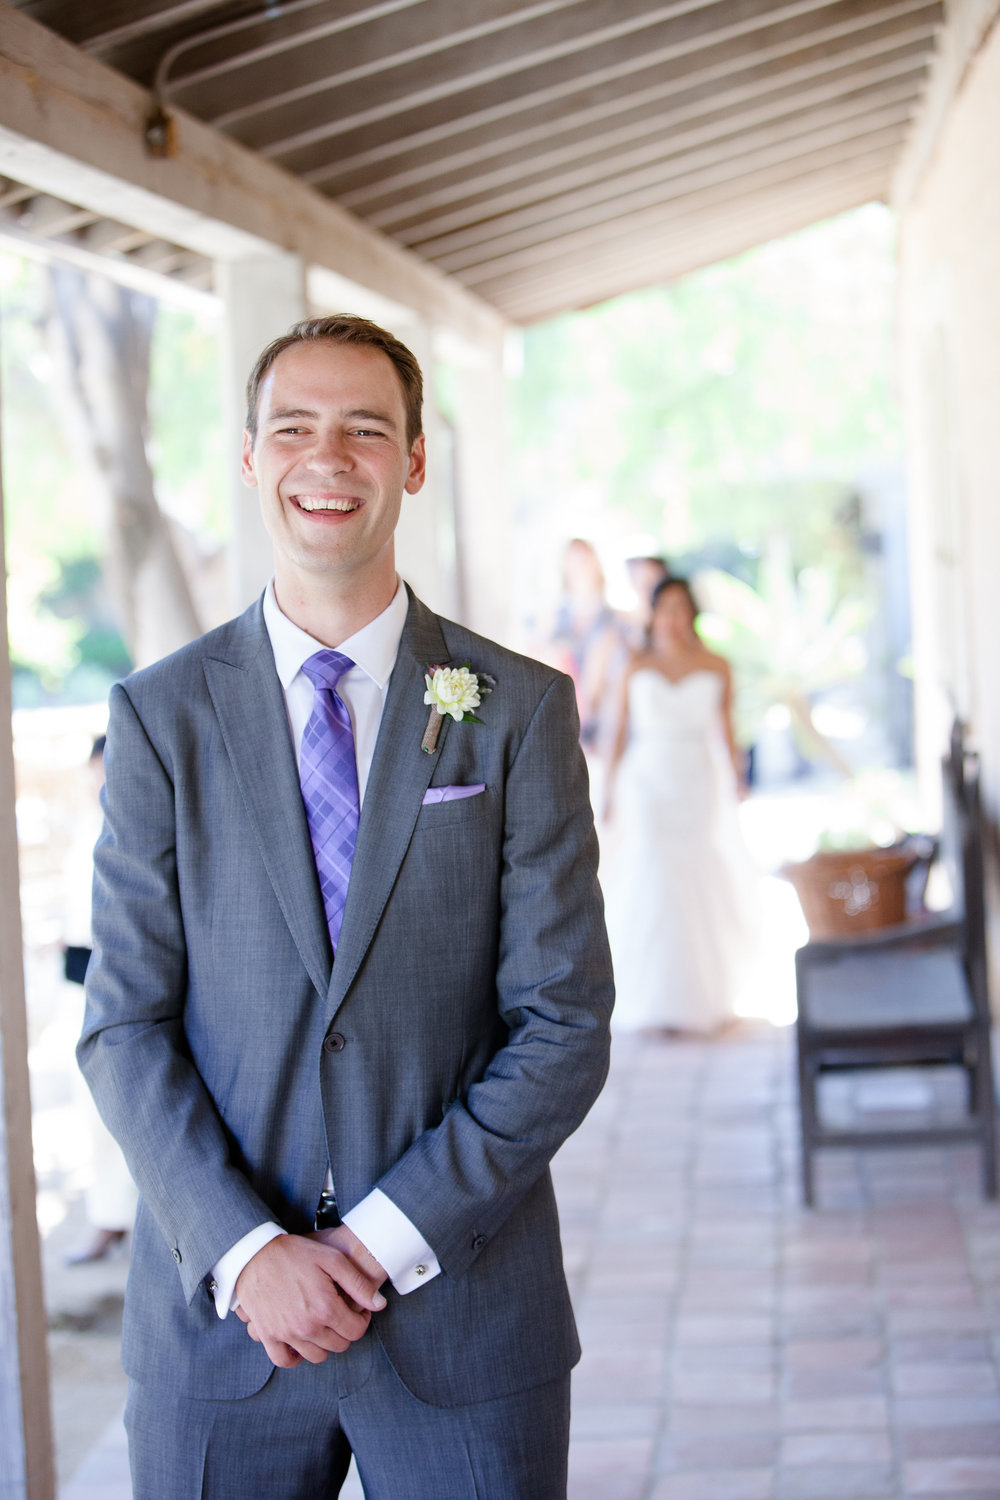 Wedding Ceremony at the Santa Barbara Historical Museum | Miriam Lindbeck | Fortuna Photography